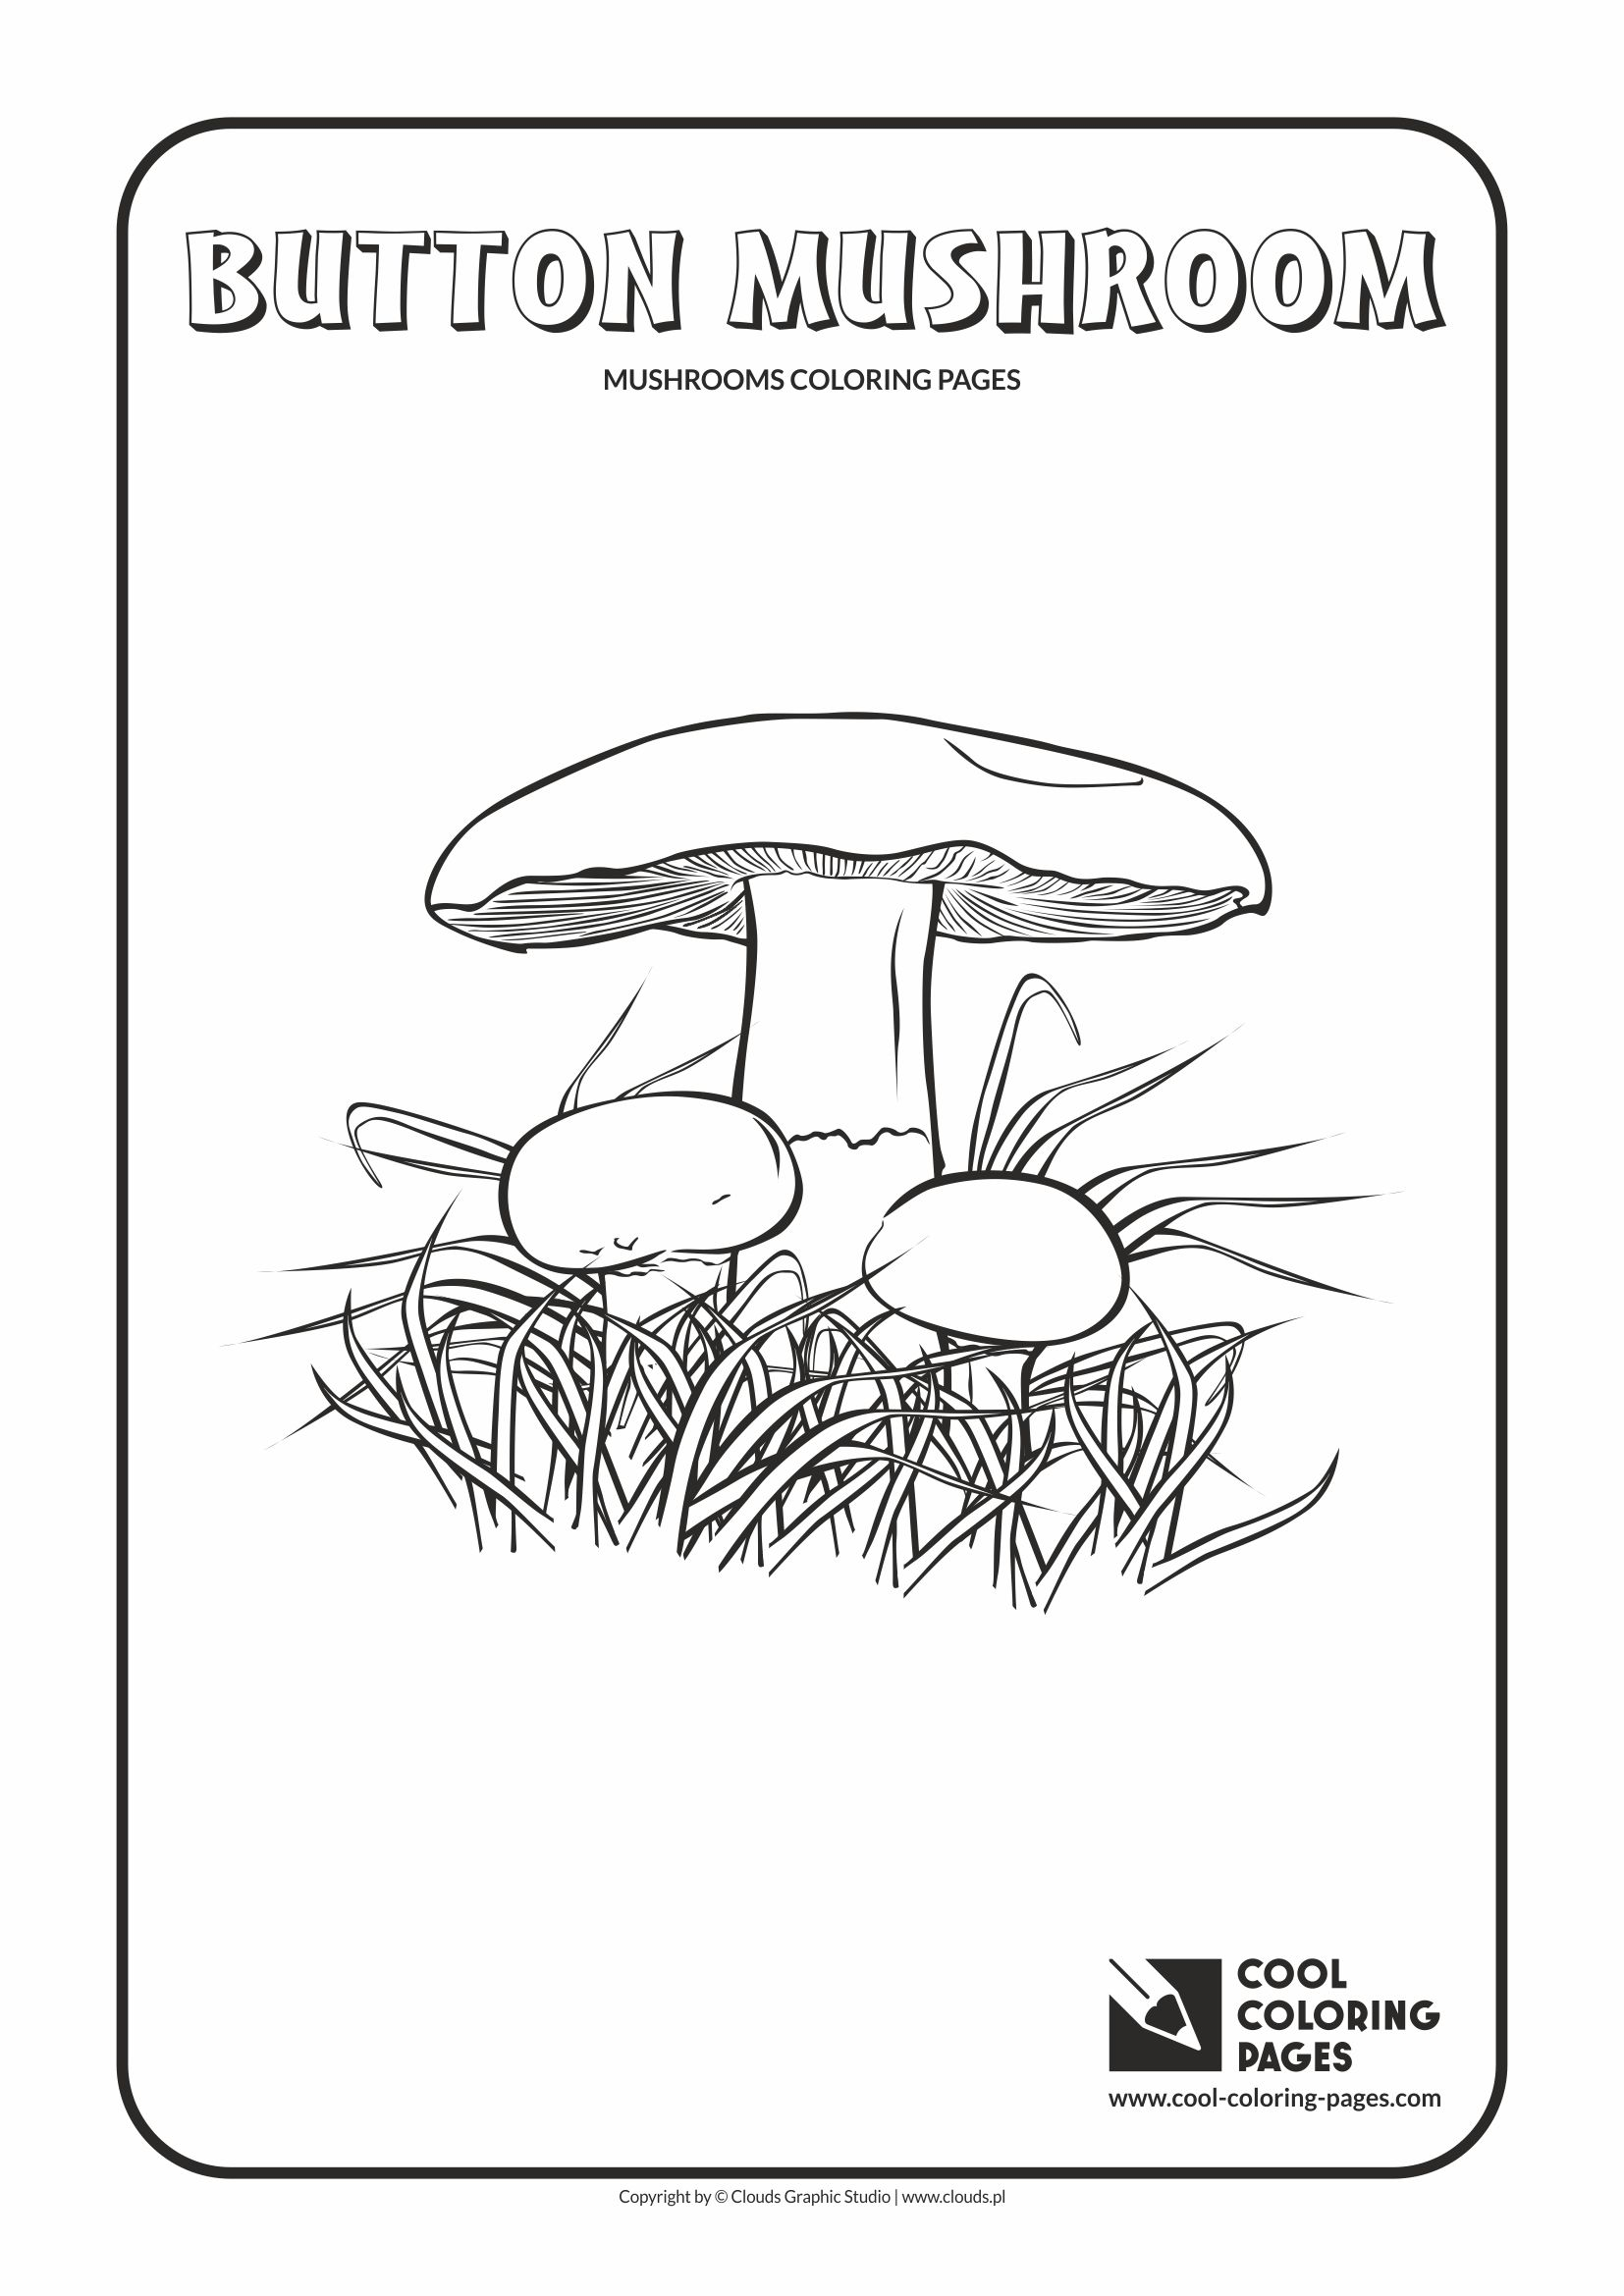 Cool Coloring Pages Mushrooms Coloring Pages Cool